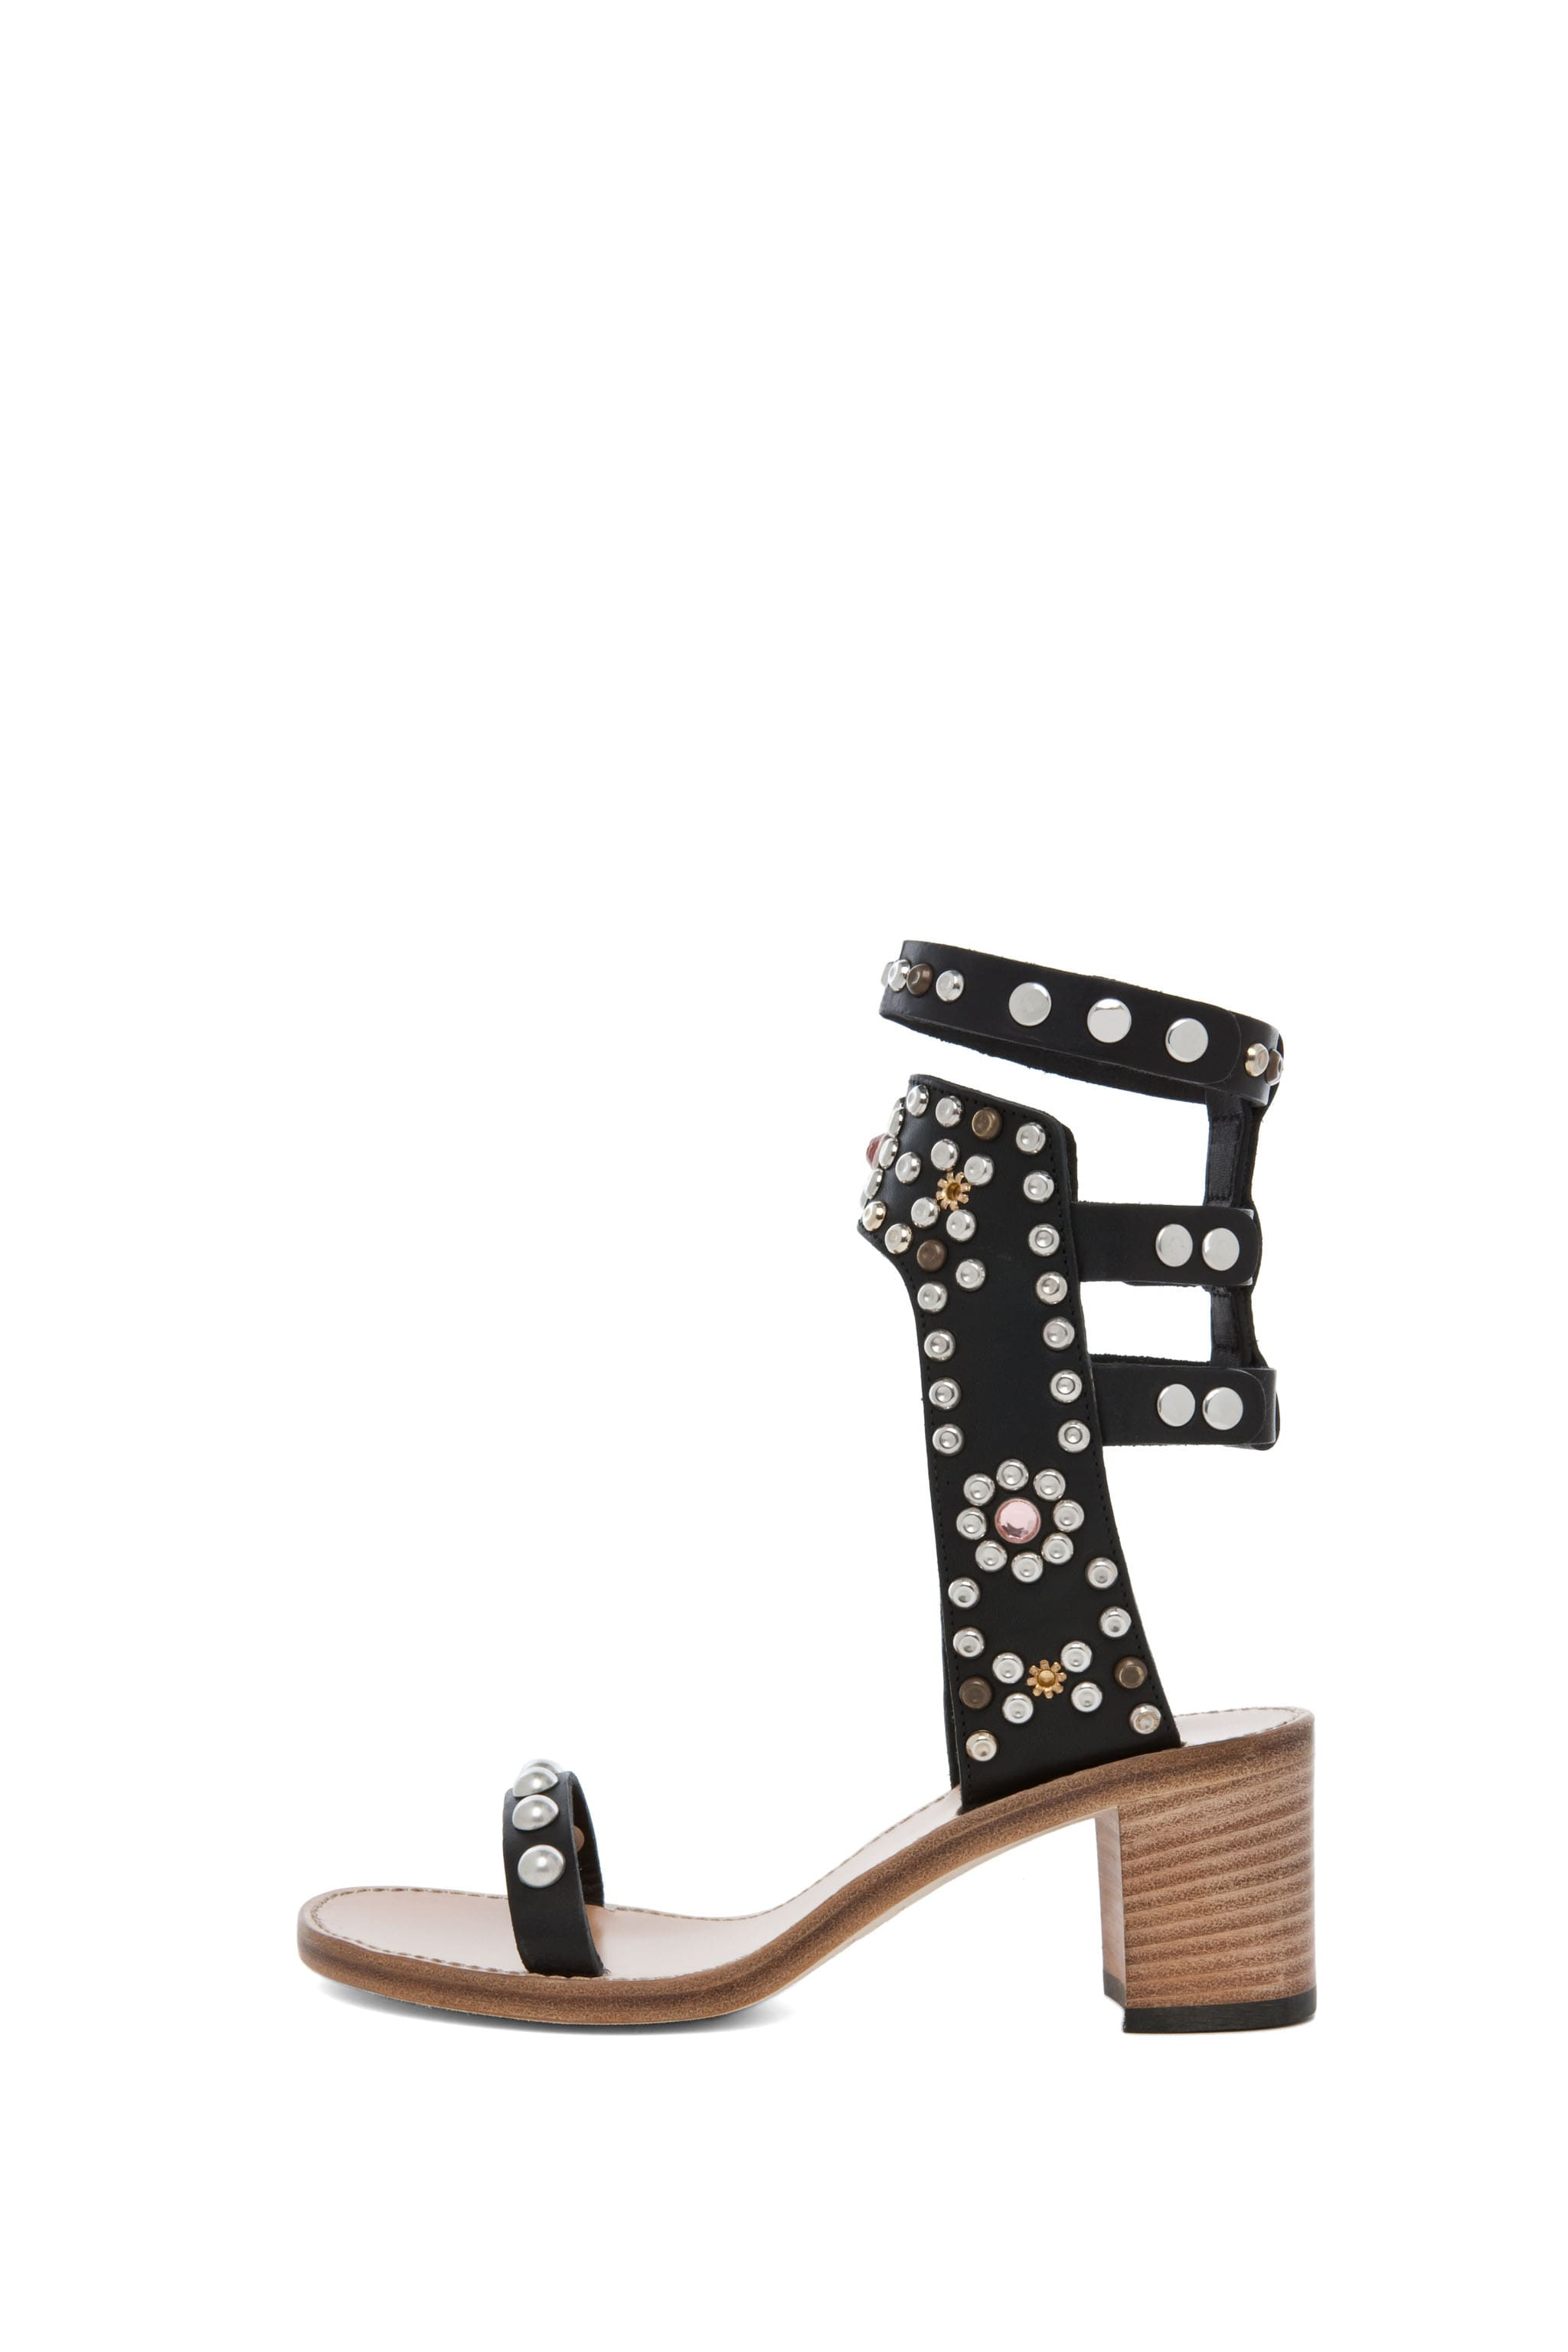 Image 1 of Isabel Marant Caroll Strassed and Studded Sandals in Black